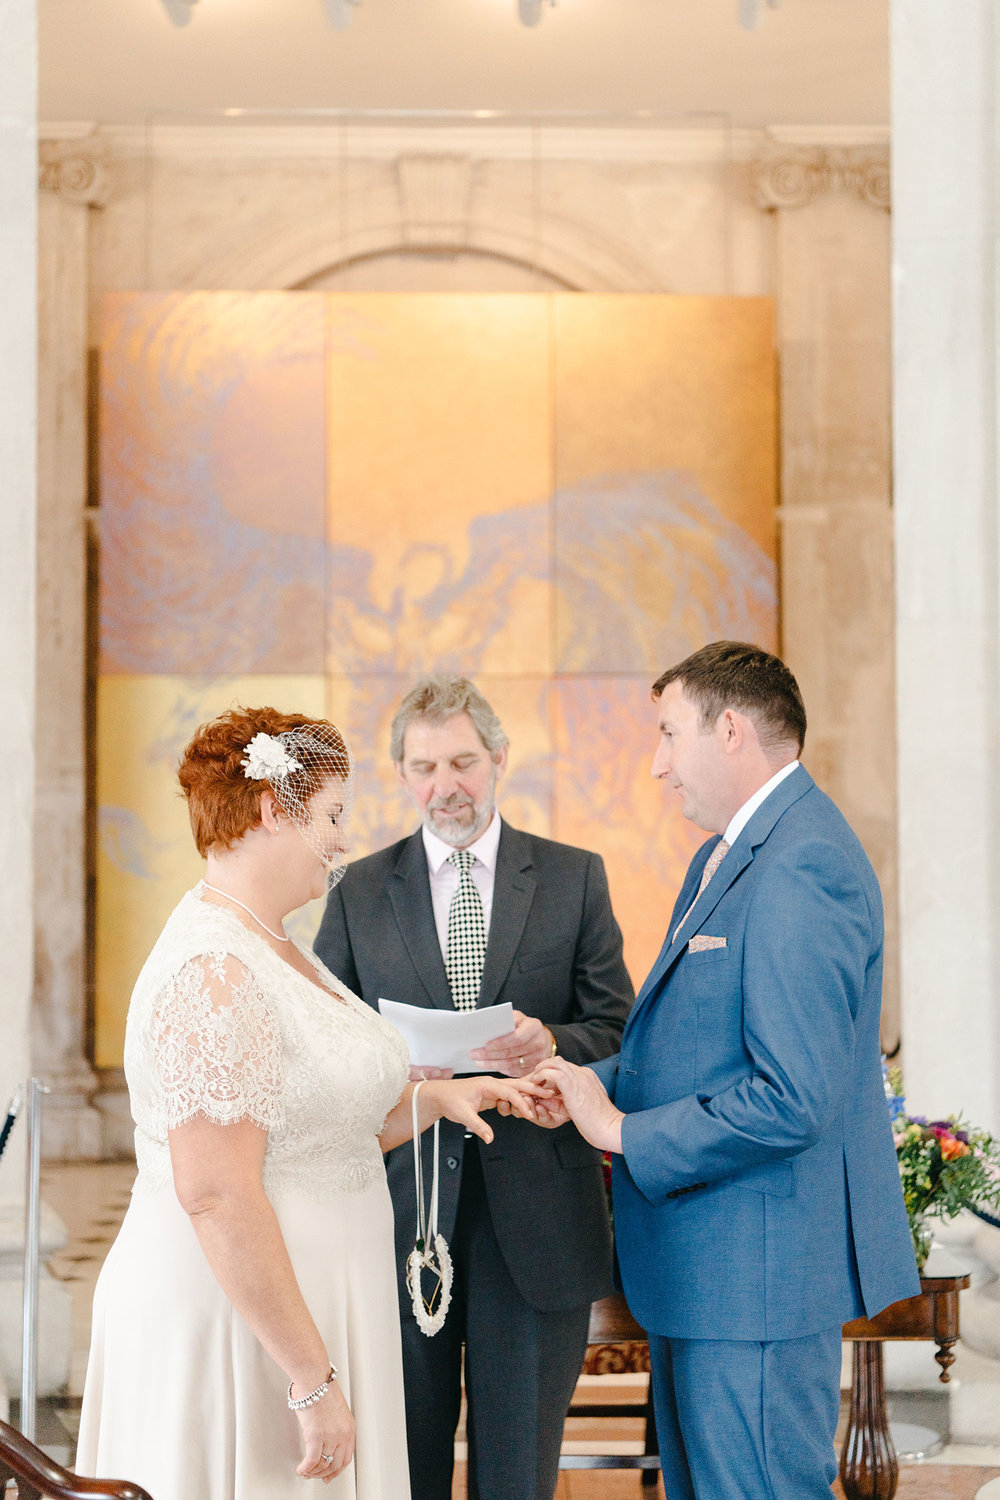 wedding-photographer-dublin-0046_0676.jpg